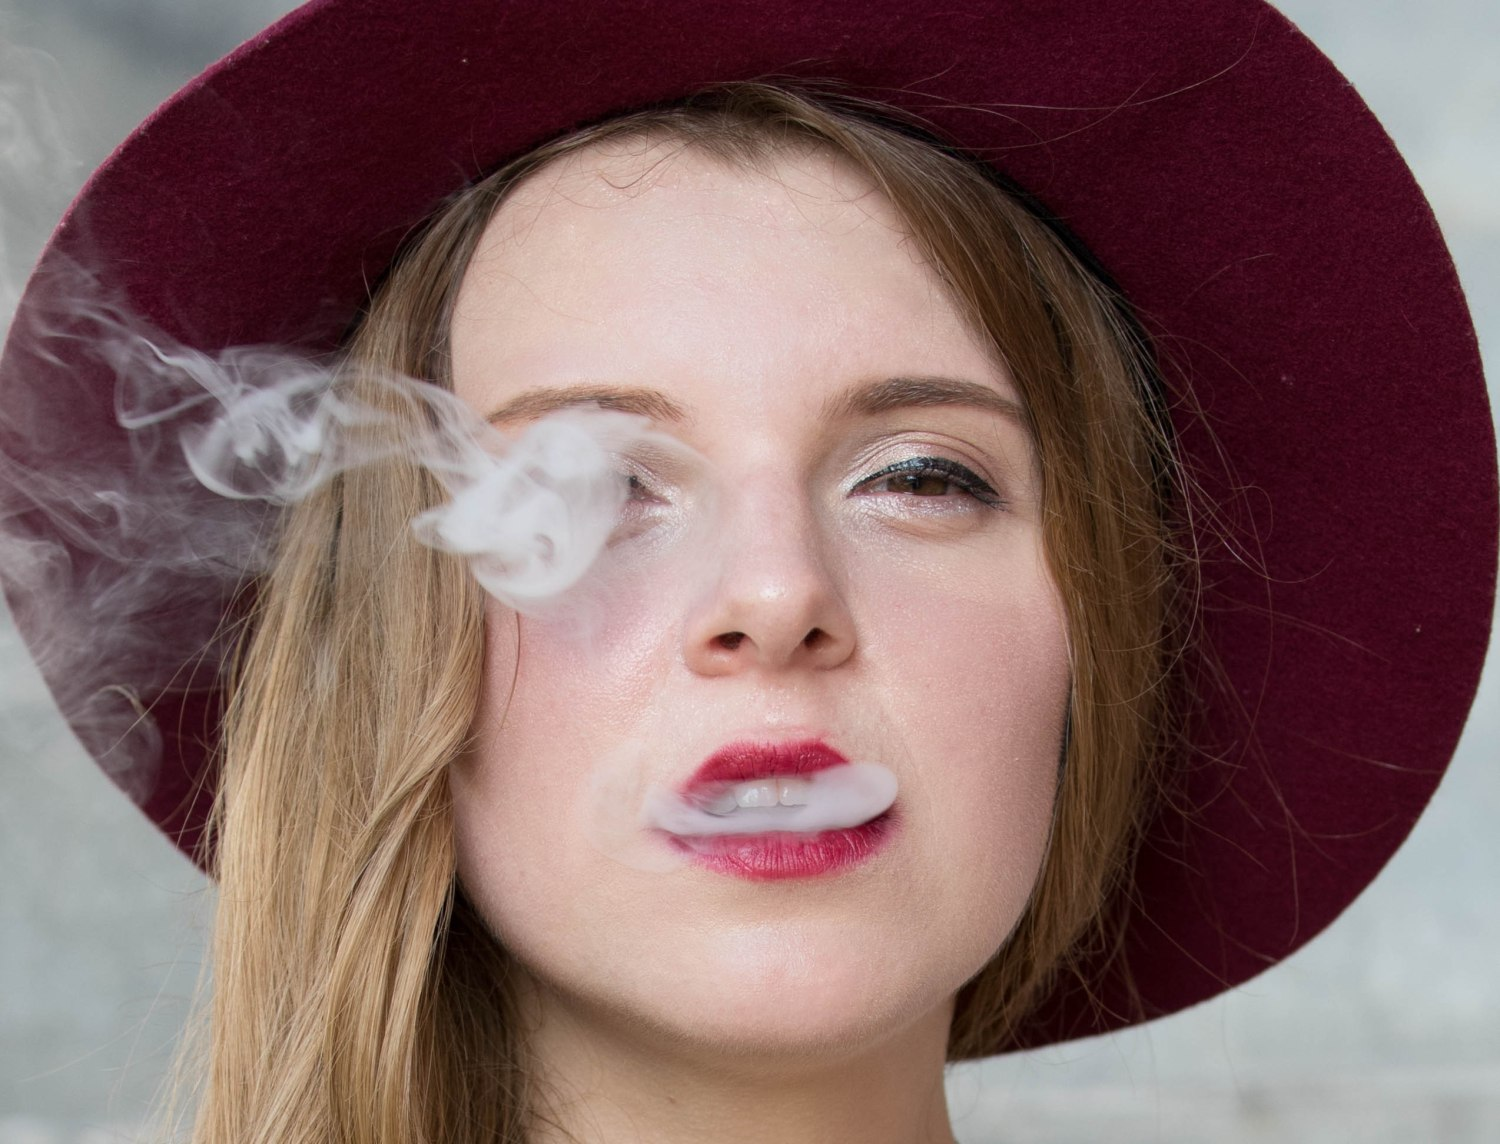 A model with a vaporizer.